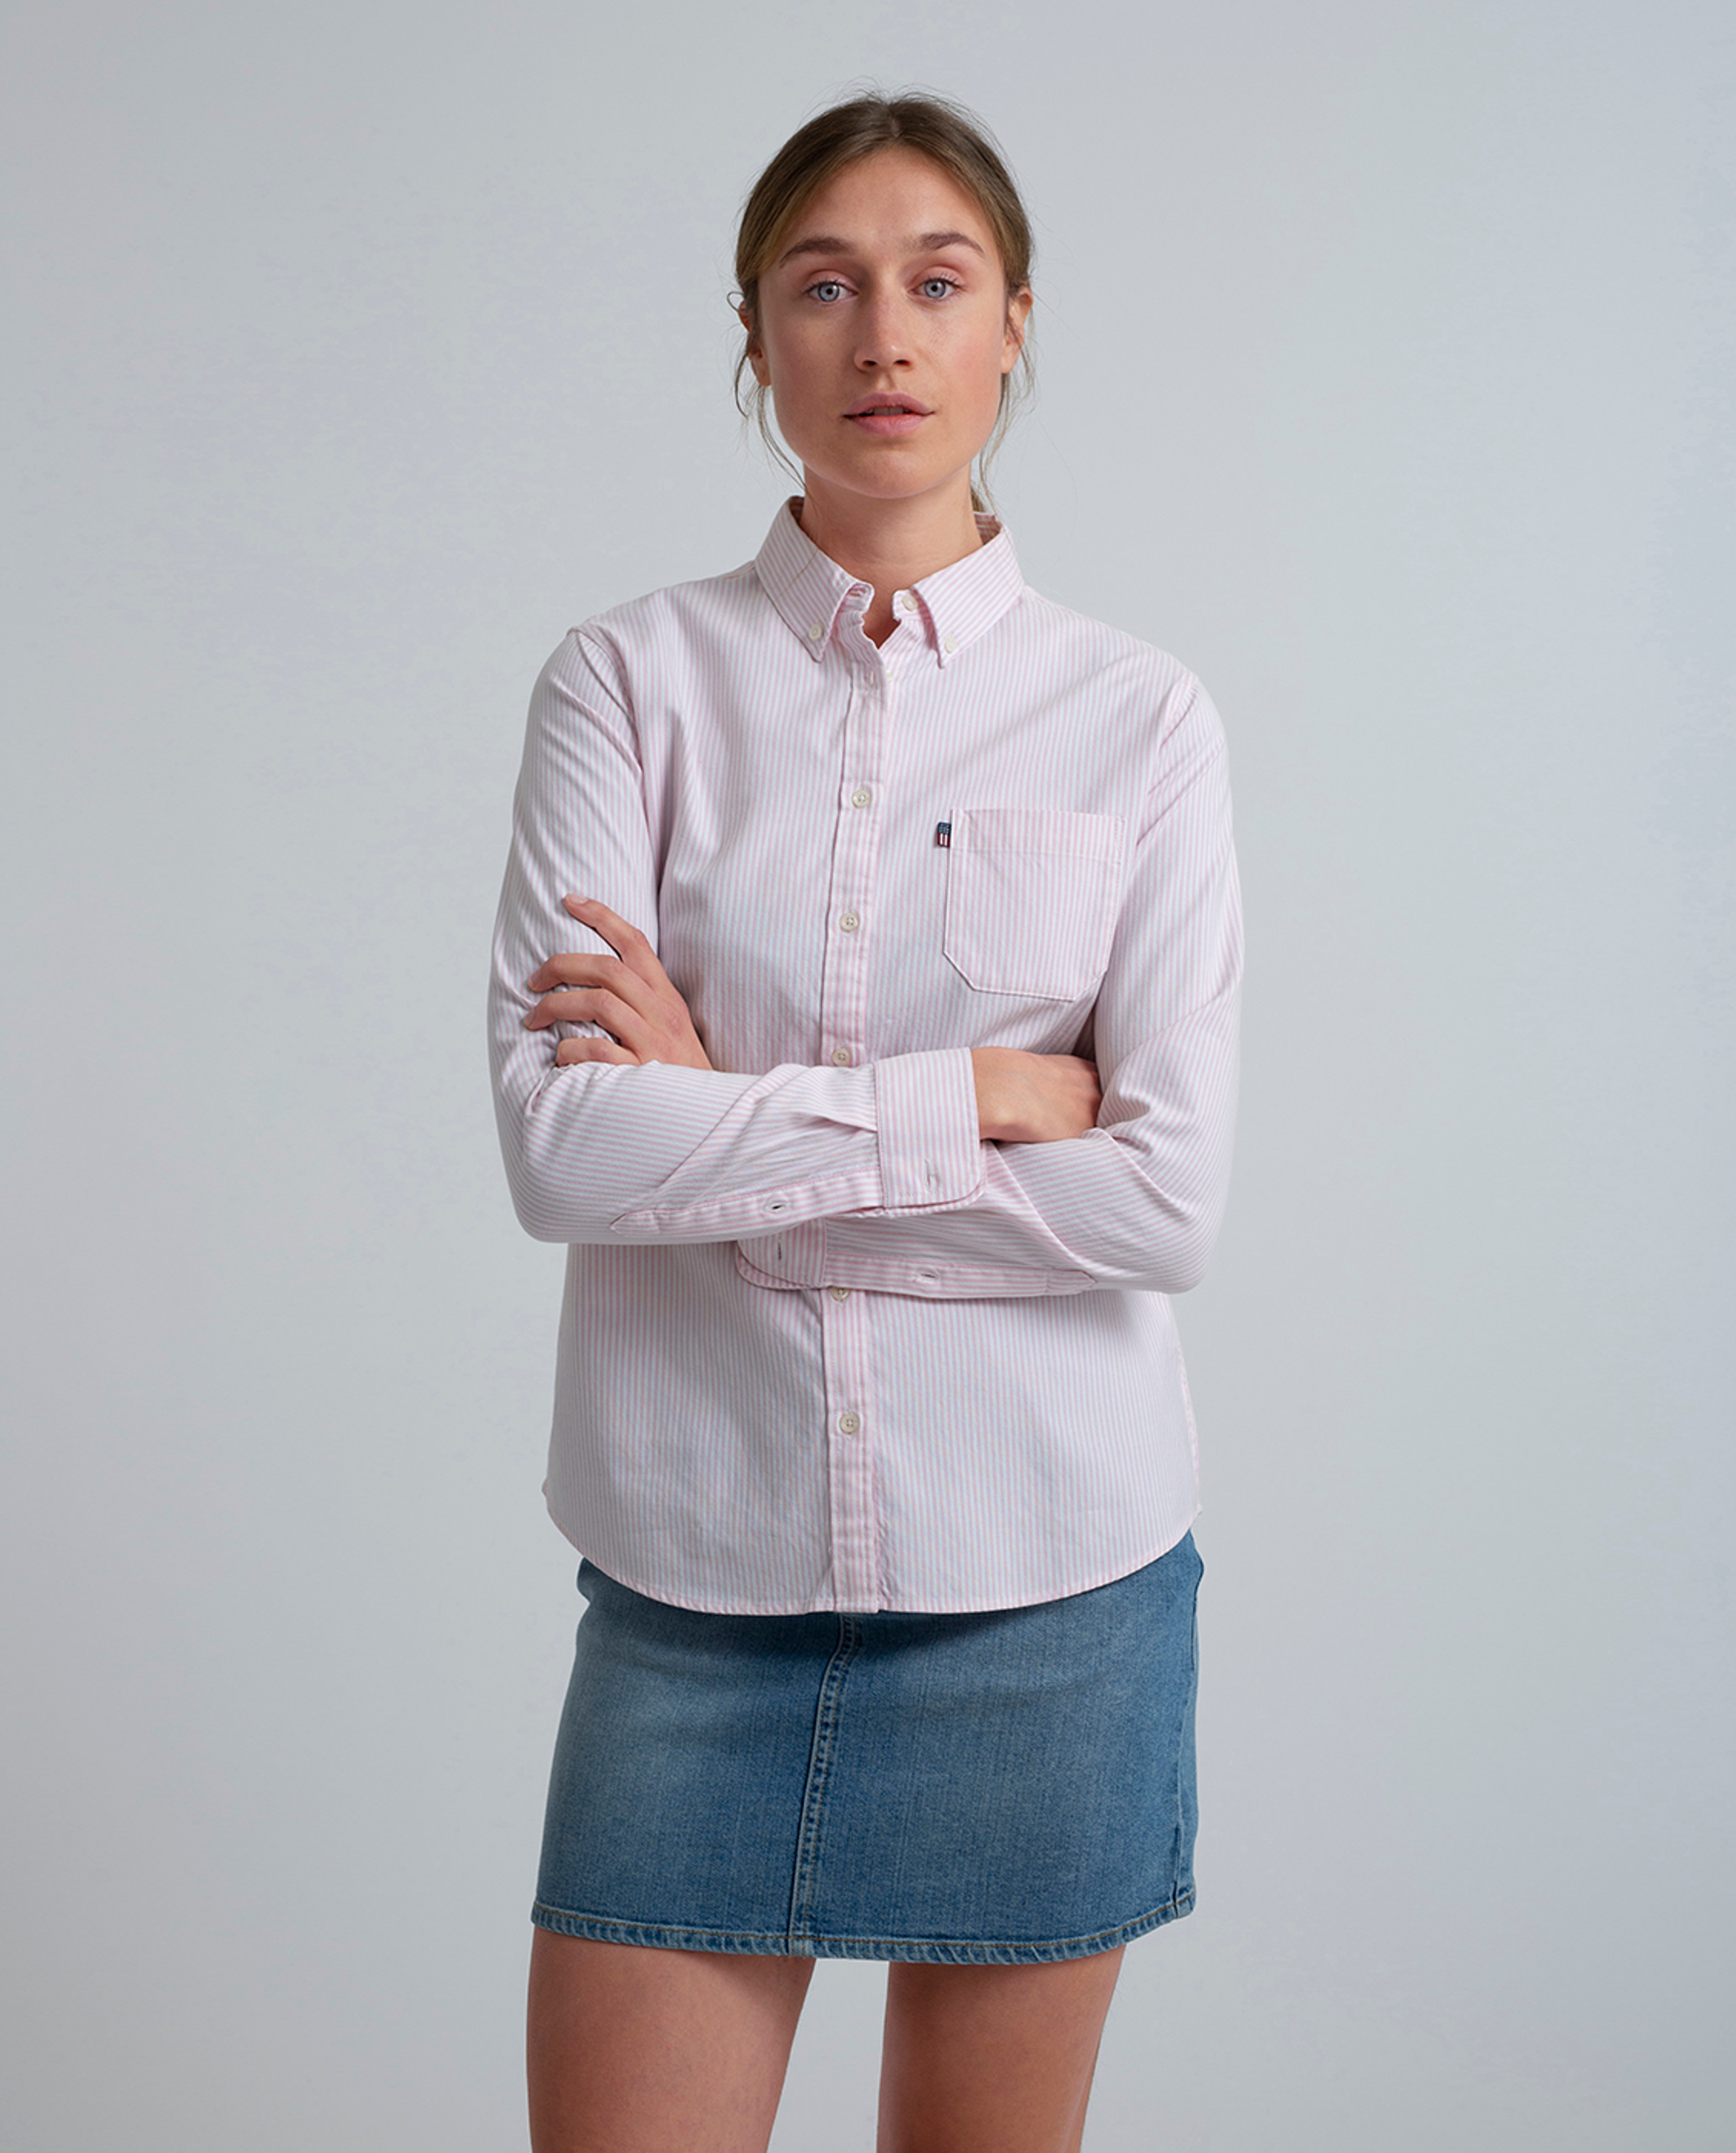 Sarah Oxford Shirt, Pink/White